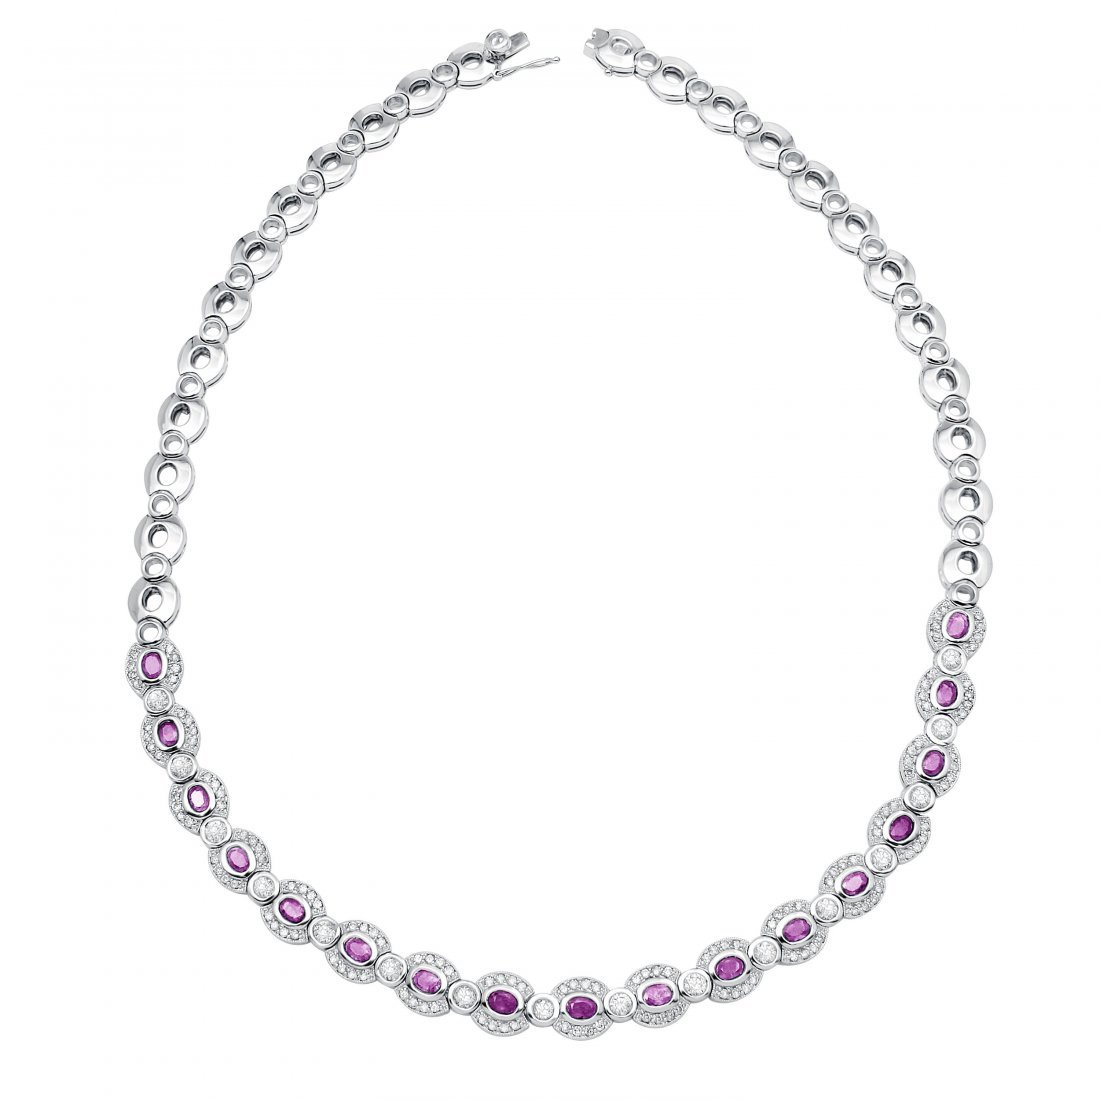 14KT White Gold Sapphire Necklace